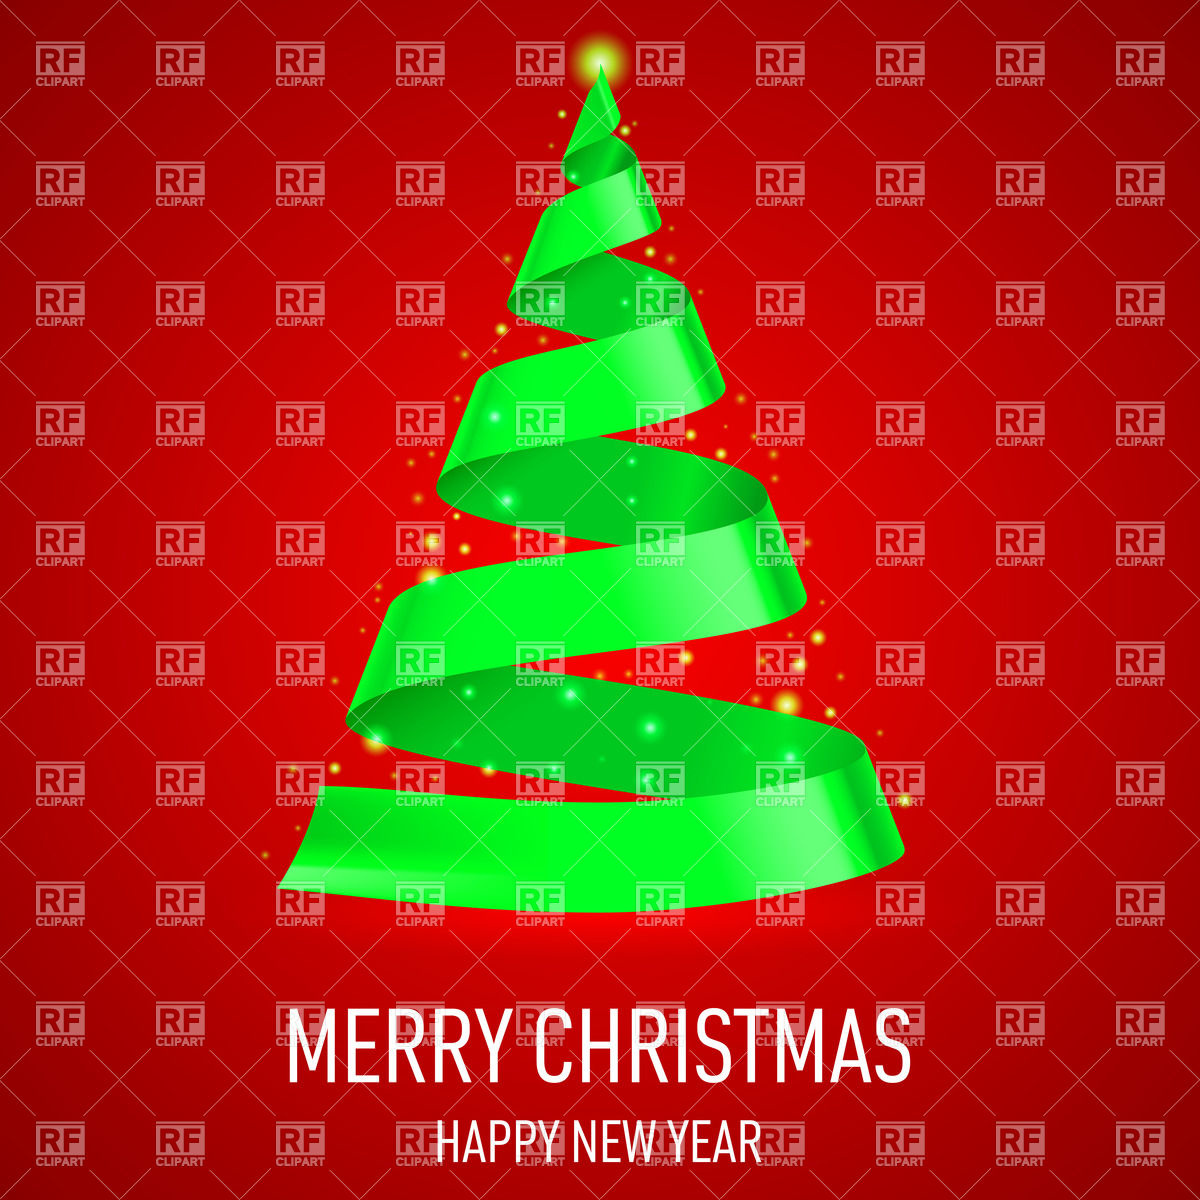 Christmas tree made of green ribbon on red background Vector Image.